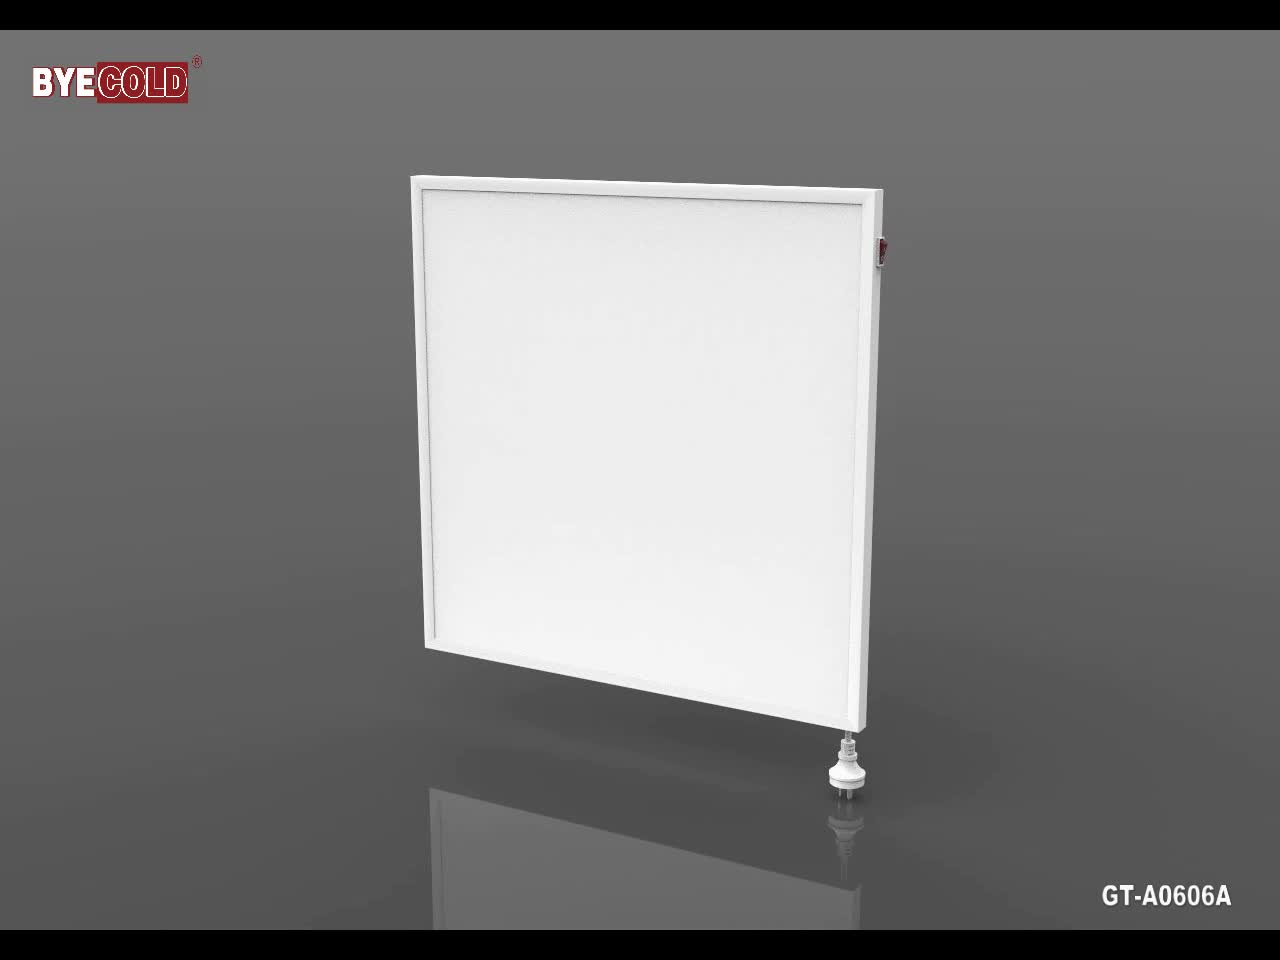 320W Square Infrared Heating Panel for walls and ceilings